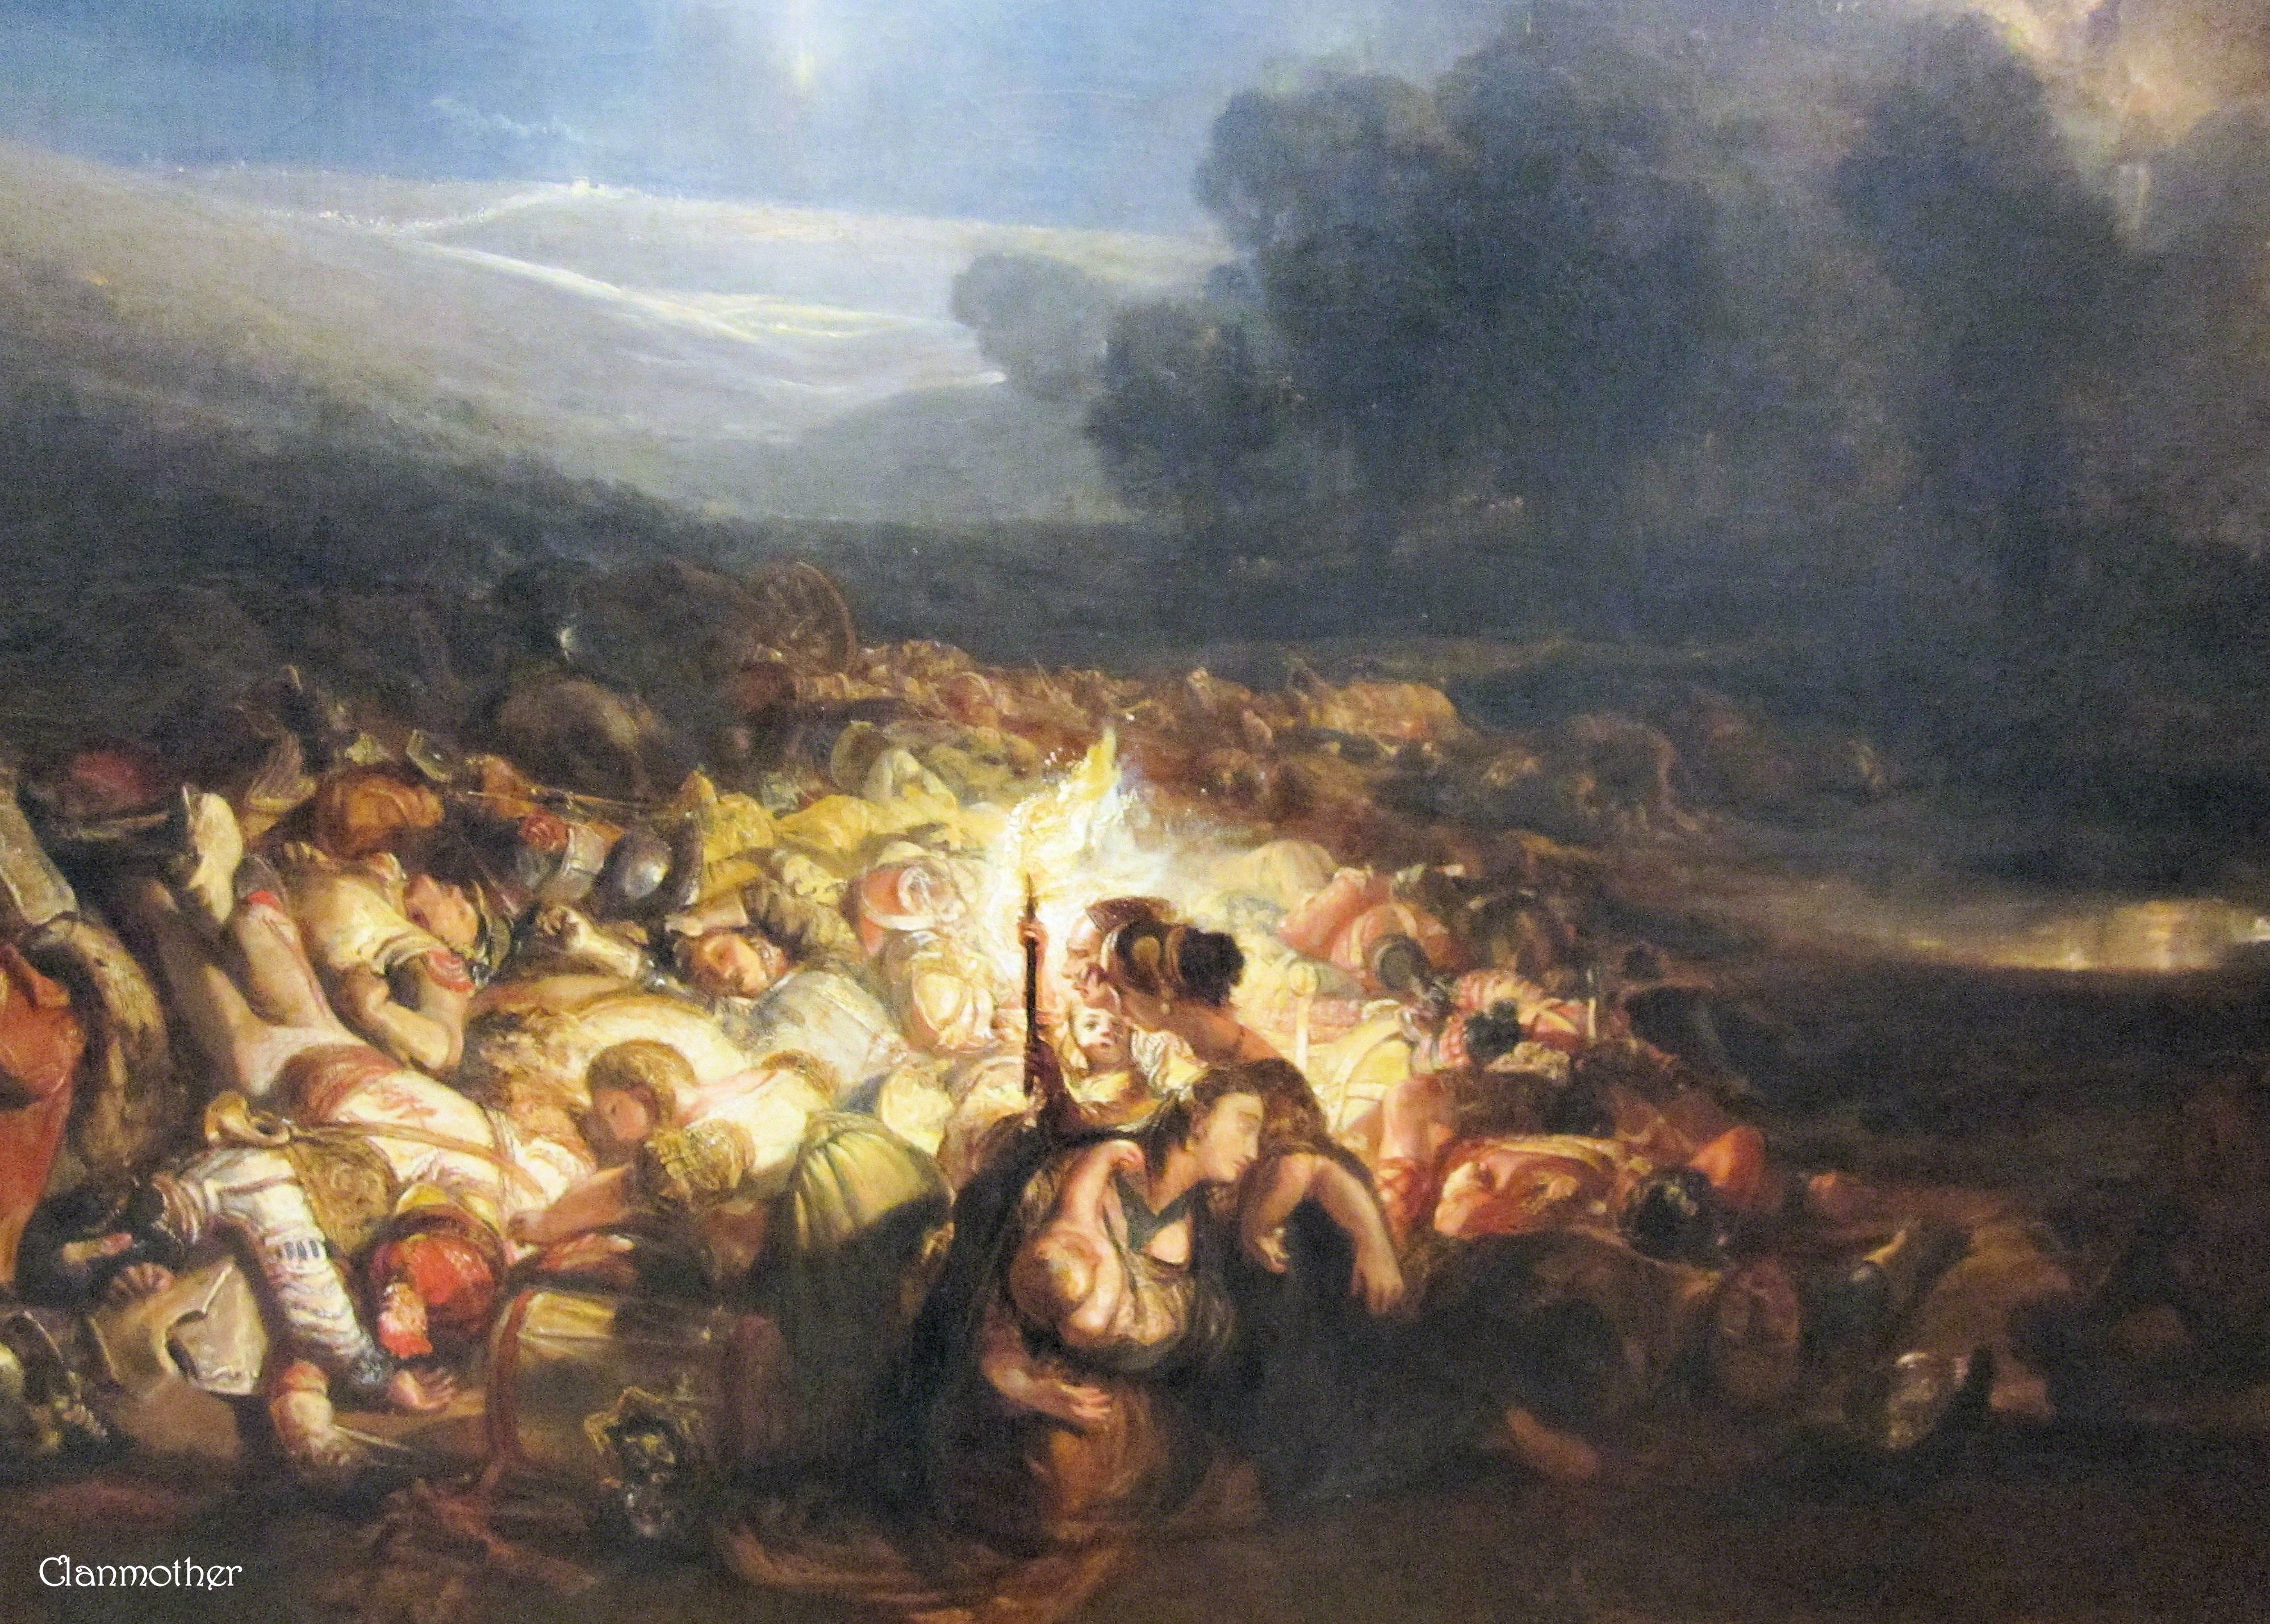 The Battle of Kalka, causes, results of the consequences